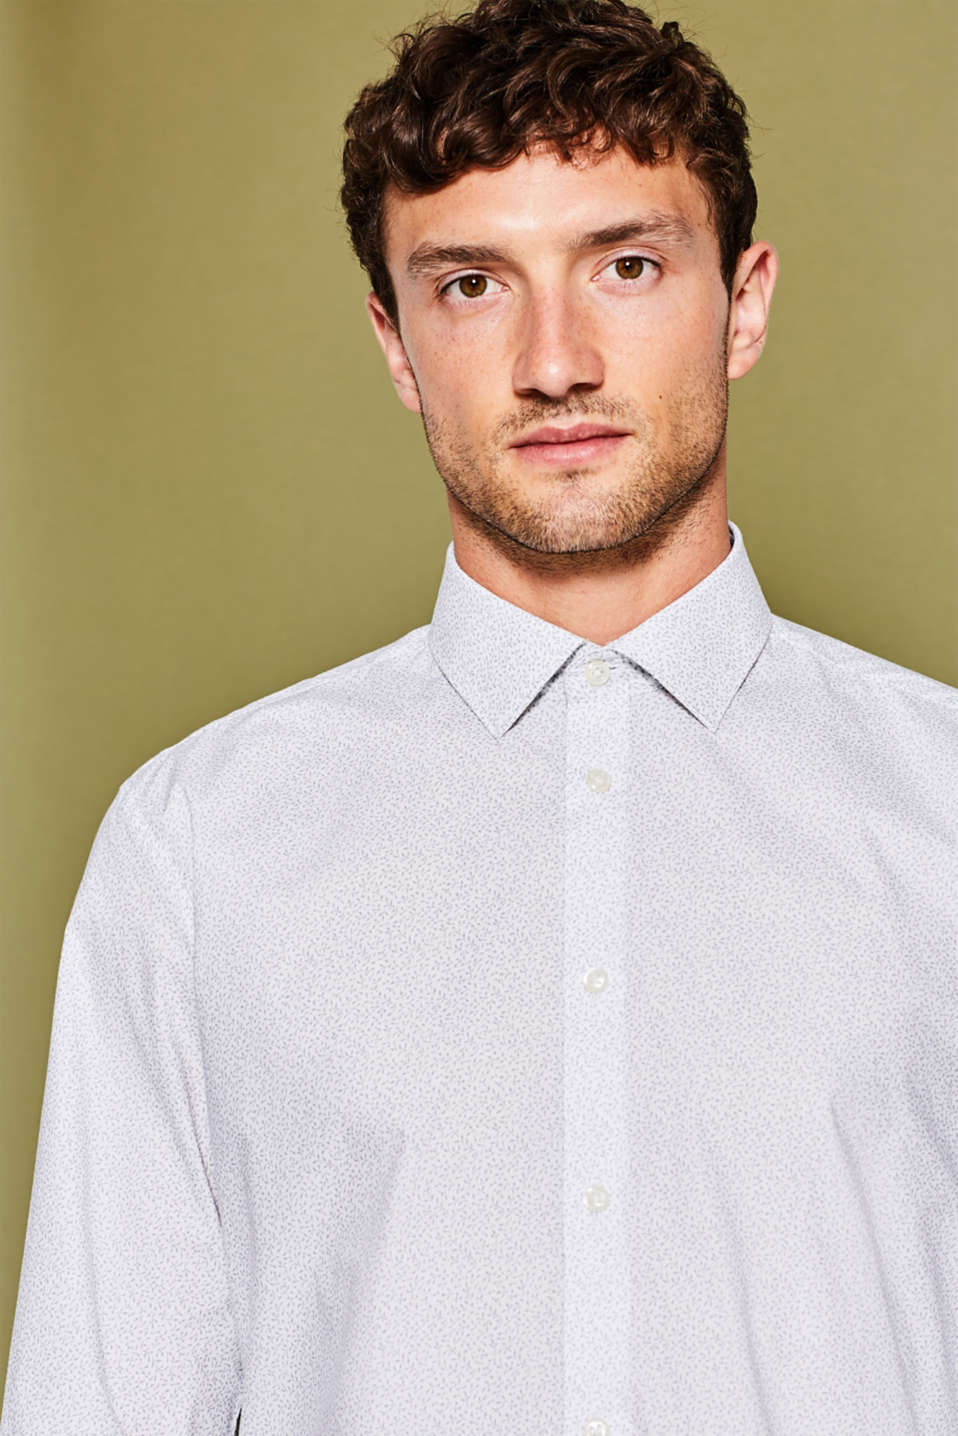 Esprit - Subtly printed shirt, 100% cotton